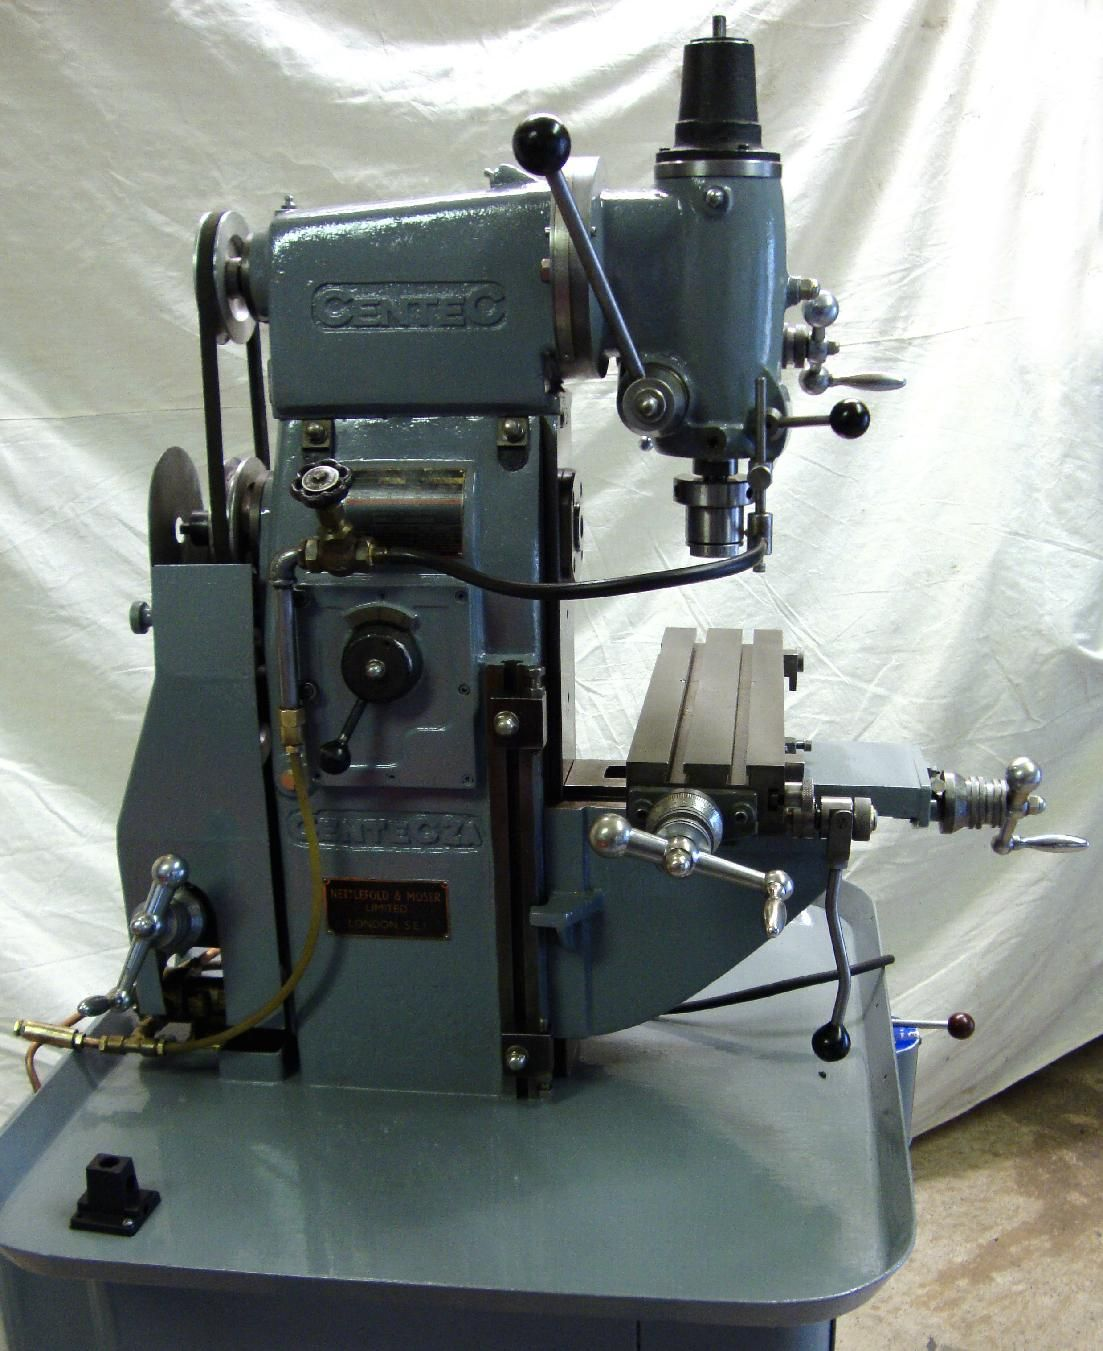 centec milling machine